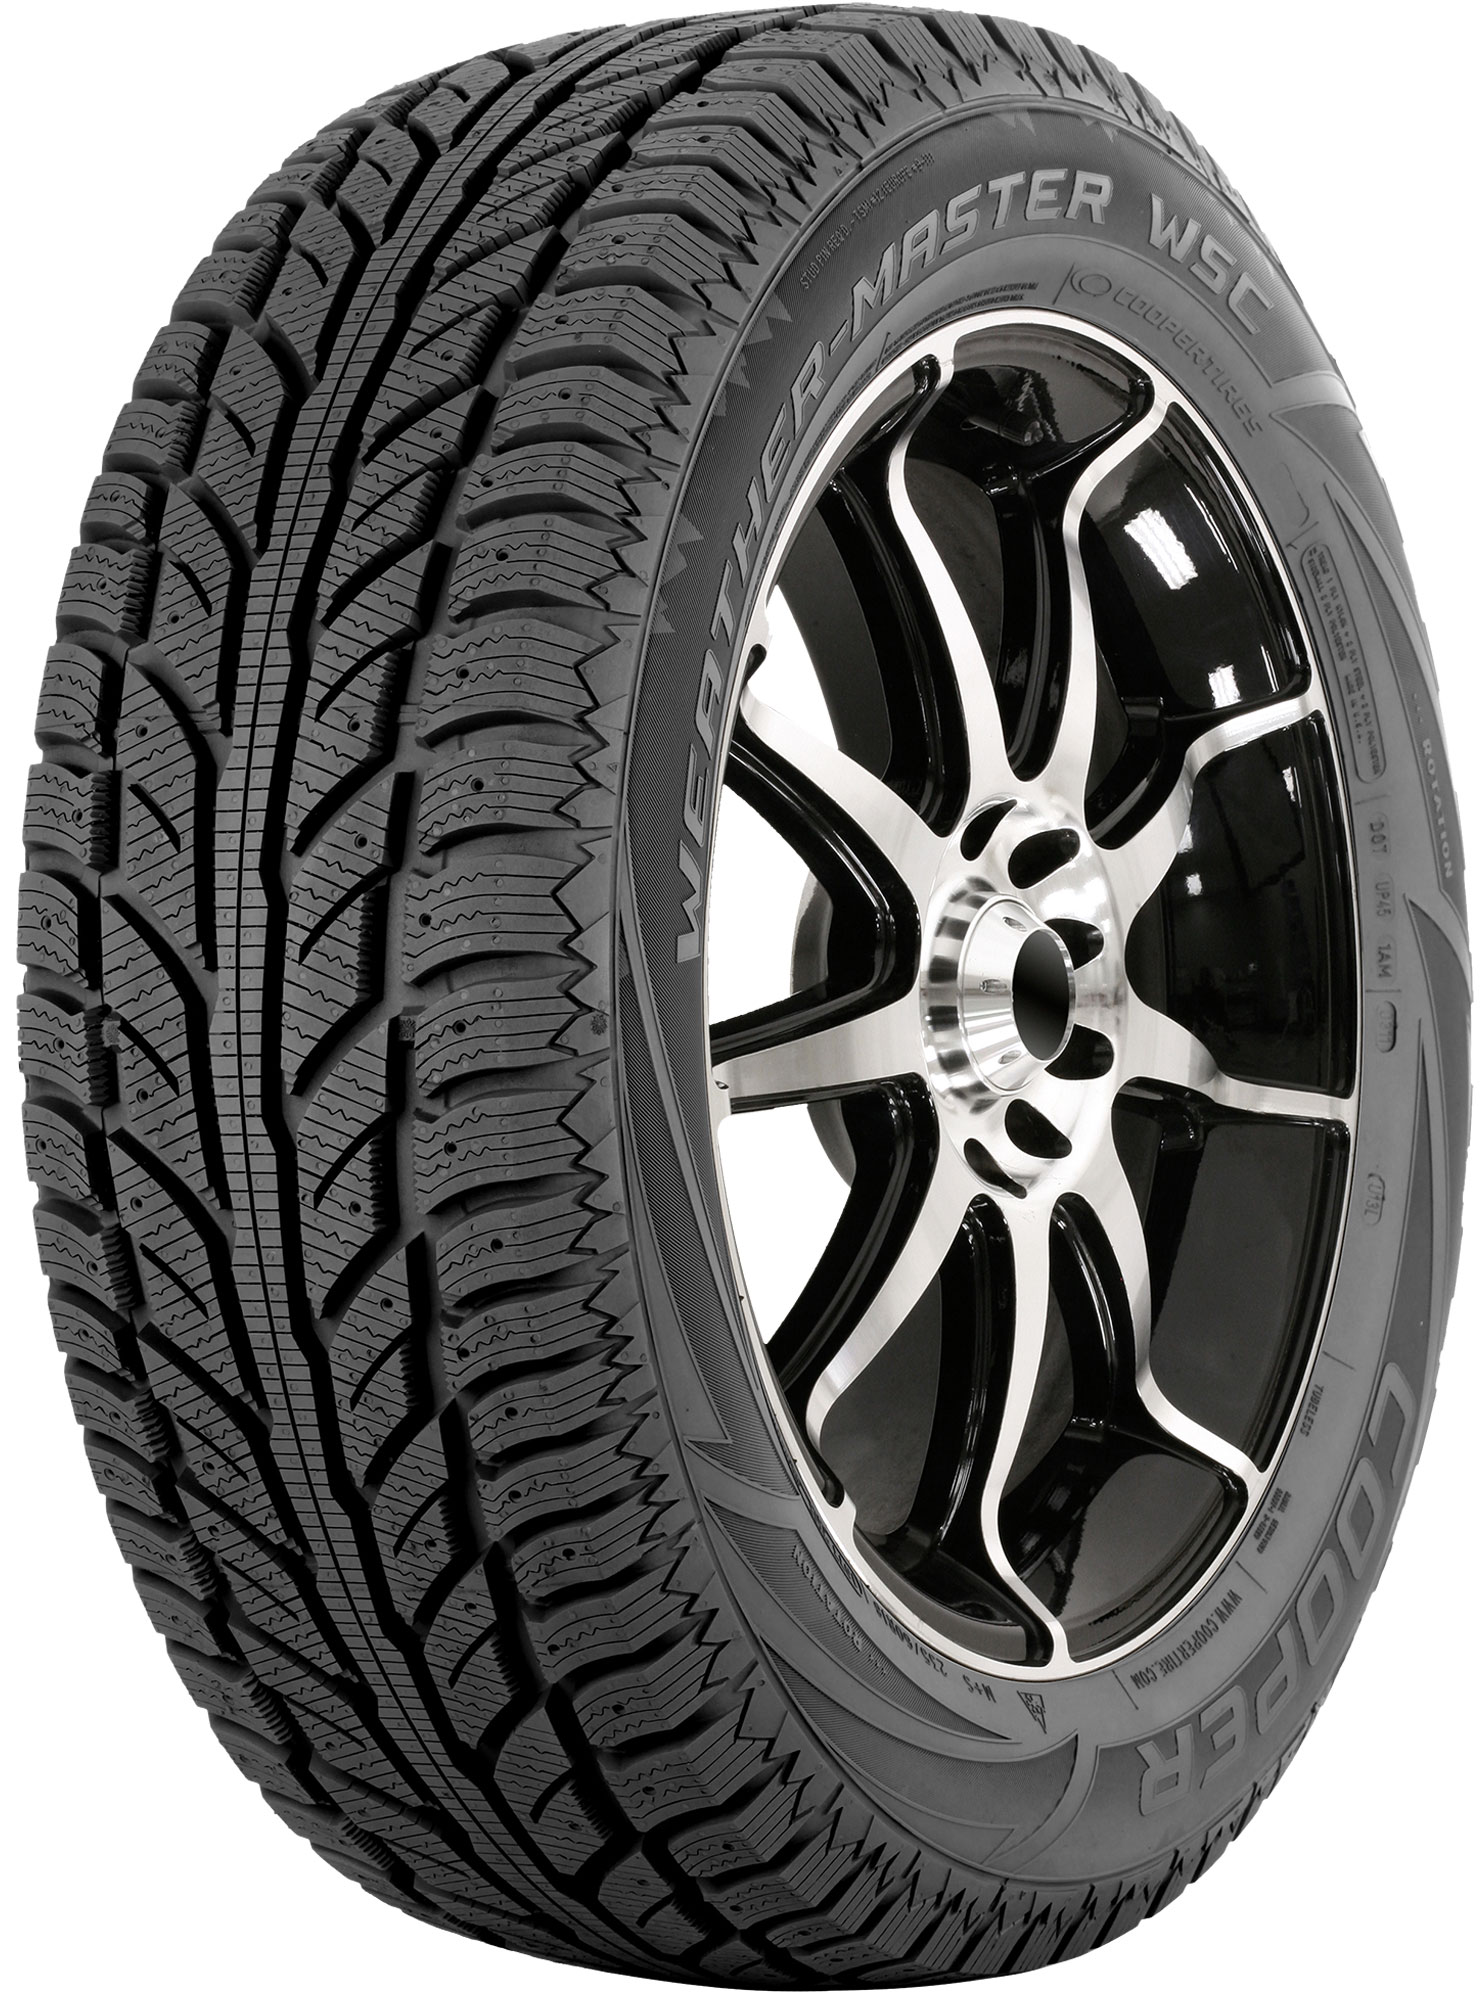 buy tires and wheels online tirebuyer com